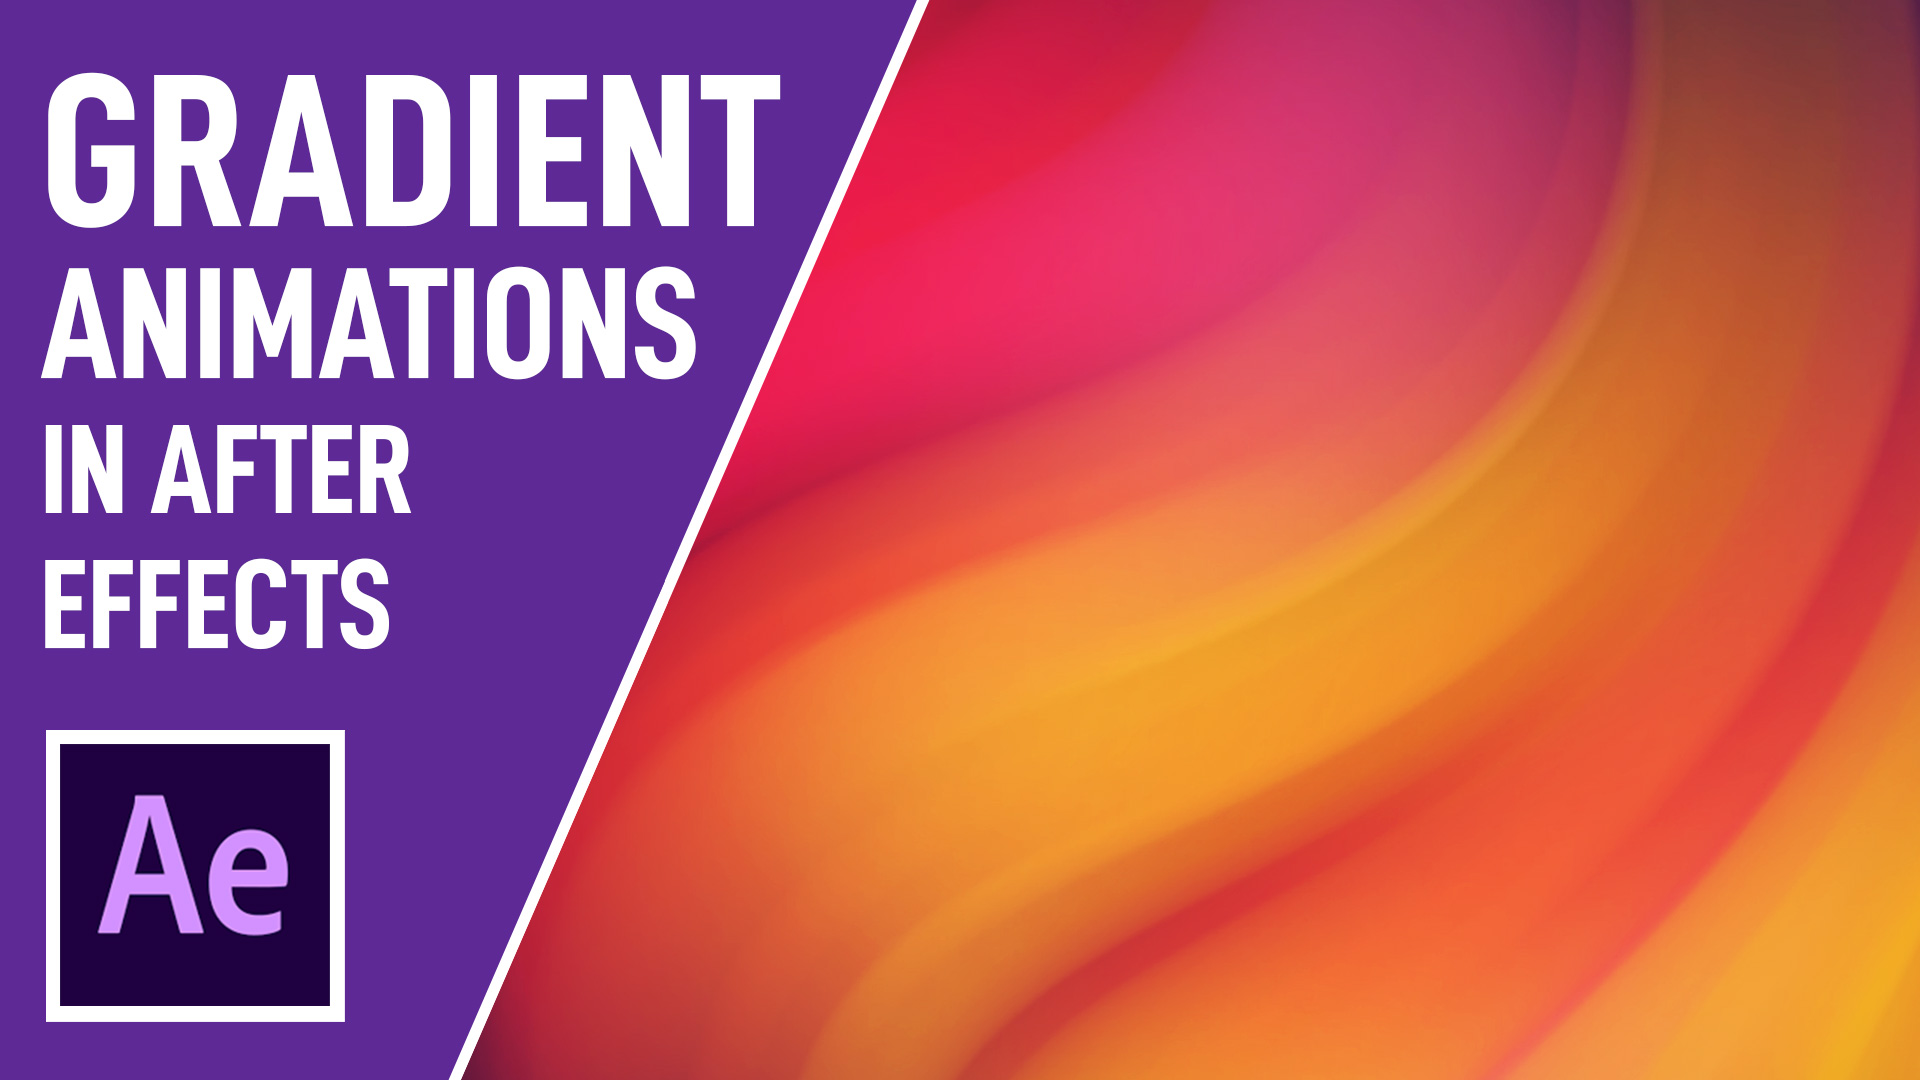 Adobe After Effects: Learn to Create Gradient Animations